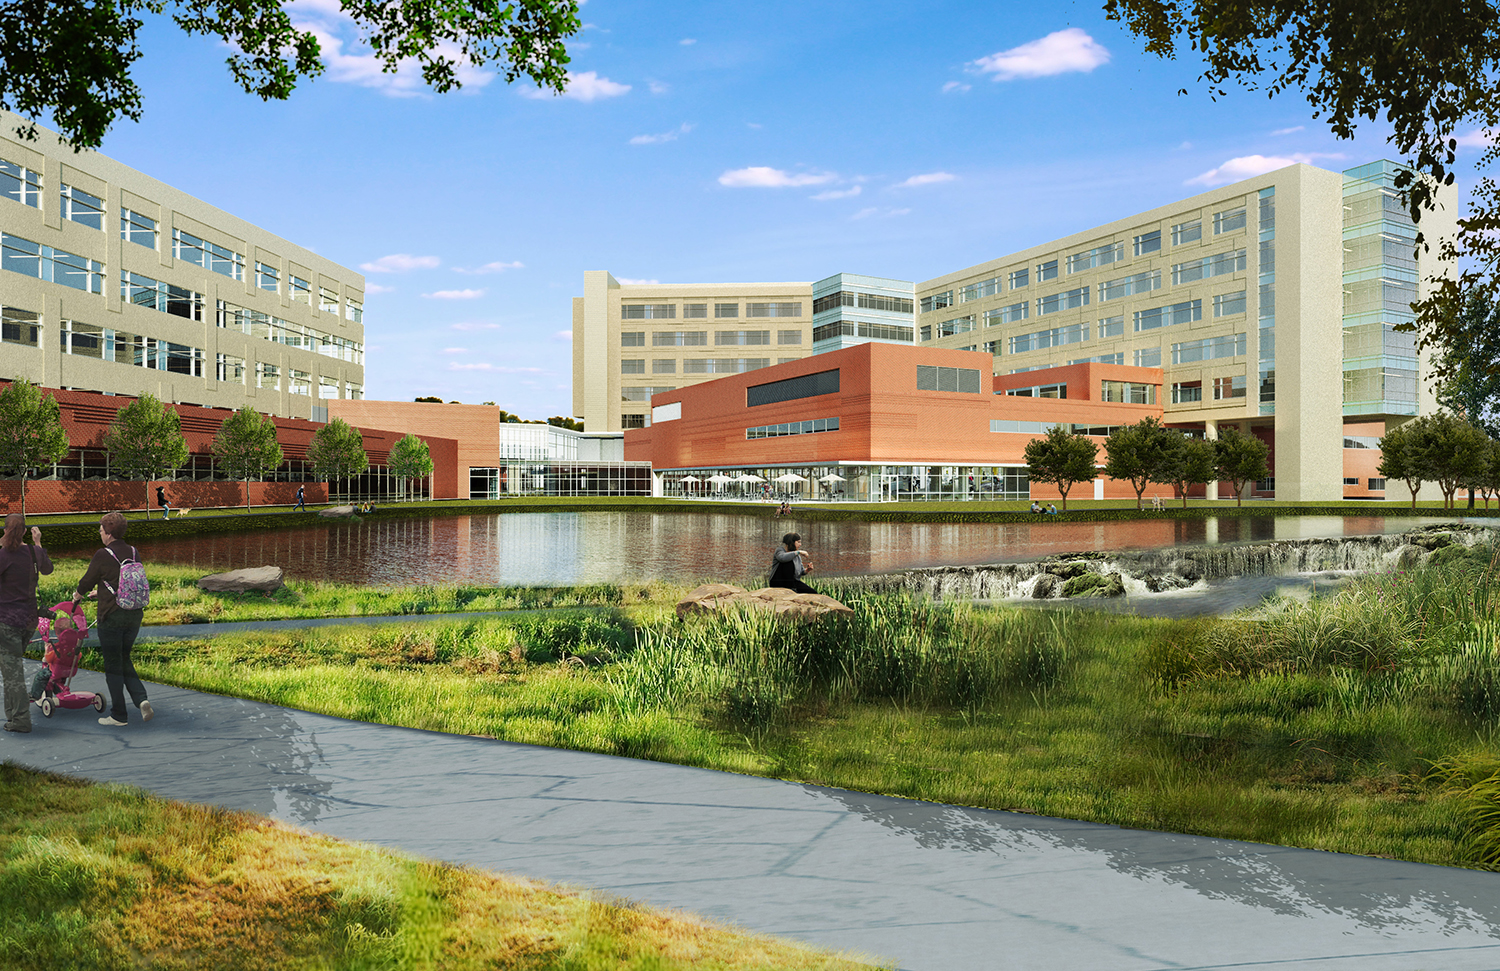 New Medical Office Building and Campus Environment Rendering Courtesy of Gresham Smith